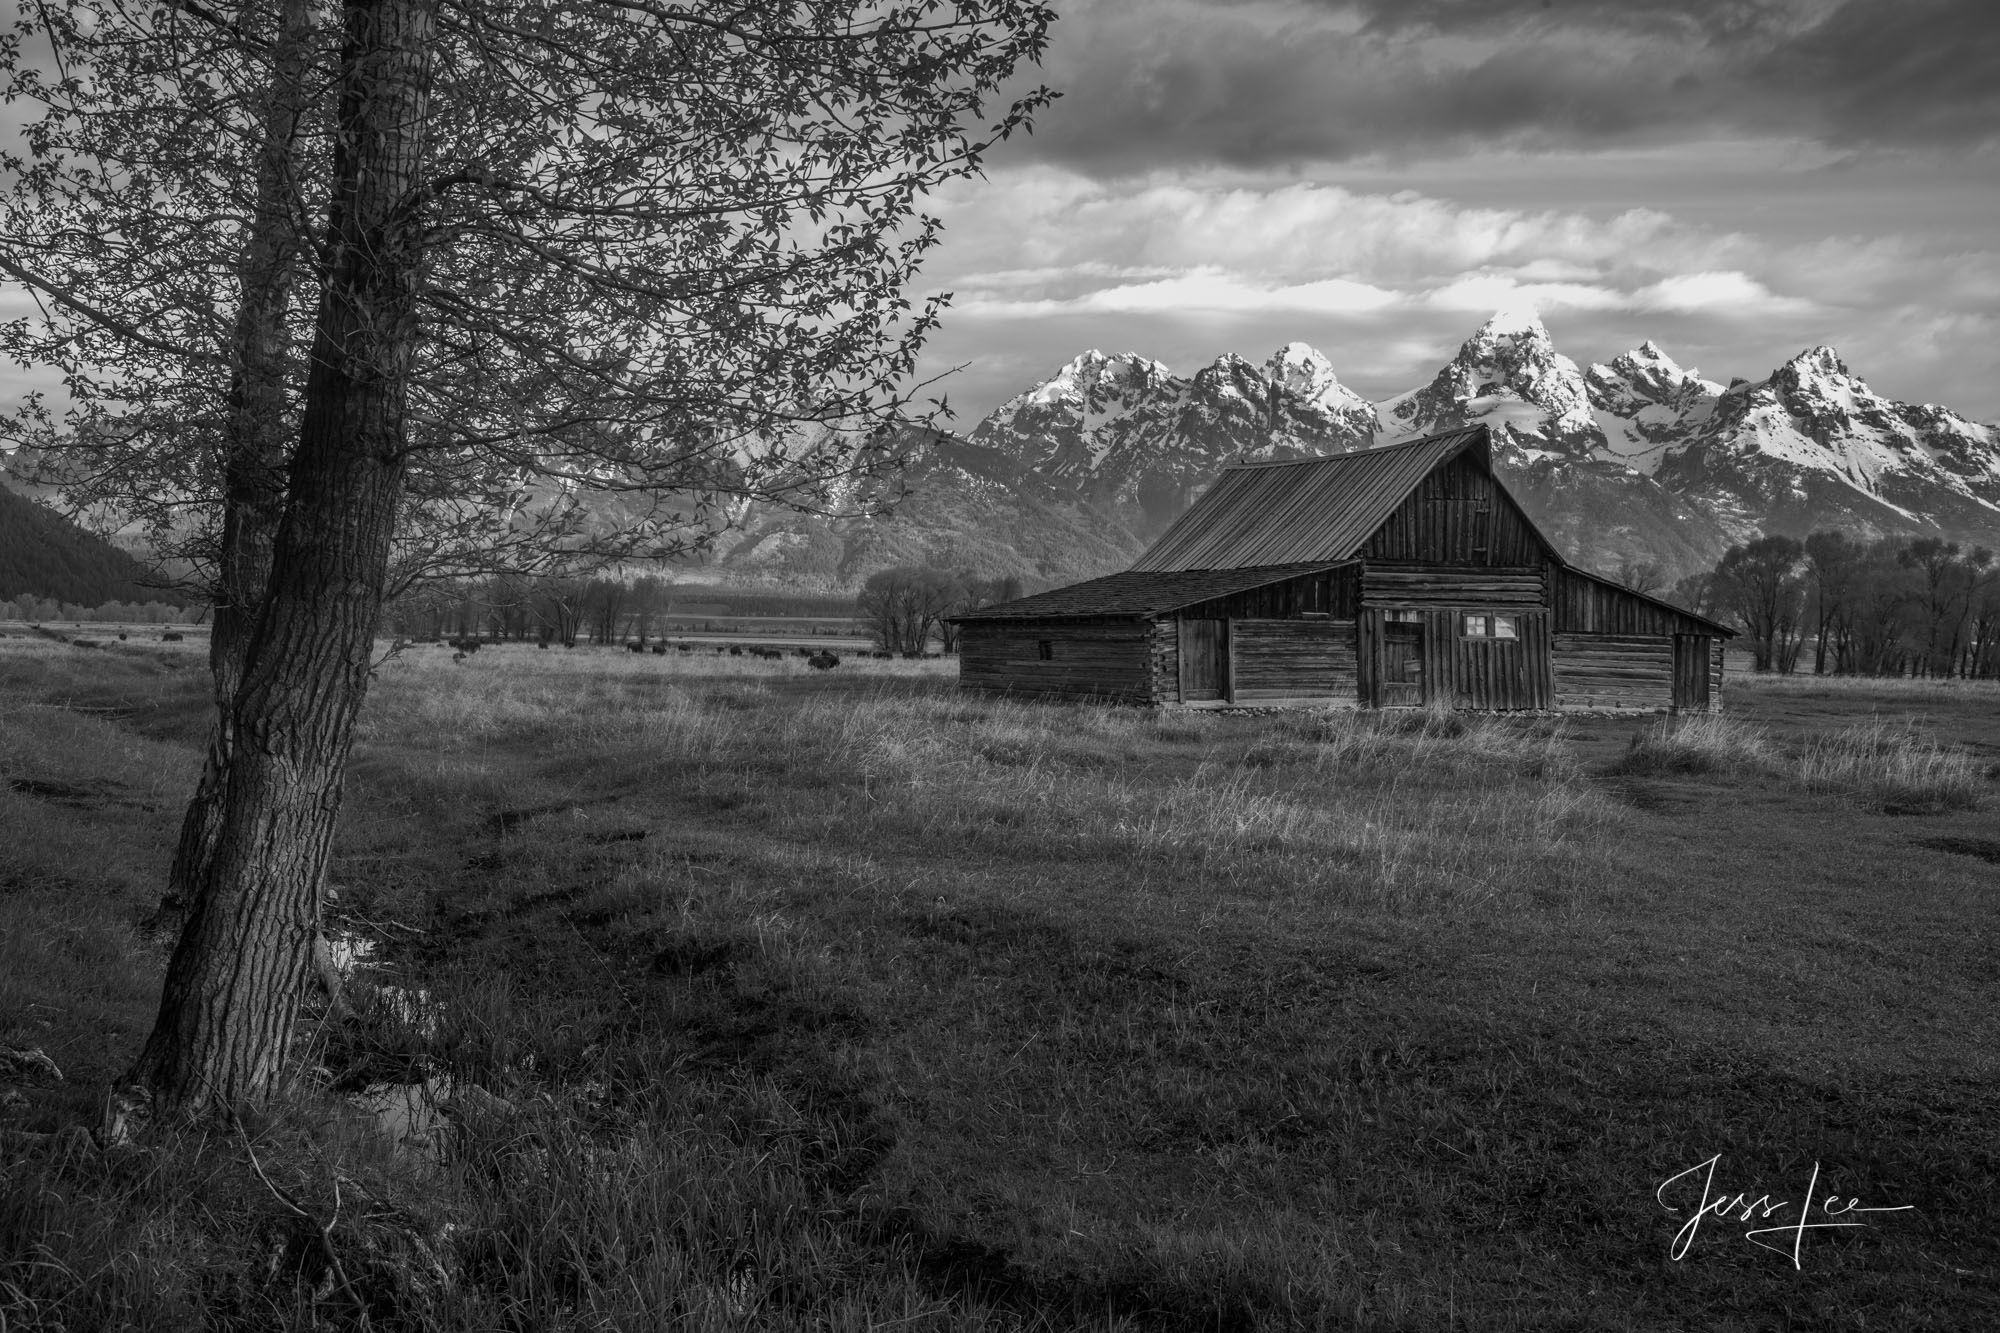 photo, photography, grand teton, mountains, Wyoming, barn, black and white,  western, fine art, print, jess lee, artist, photographer, limited edition, high quality, , photo